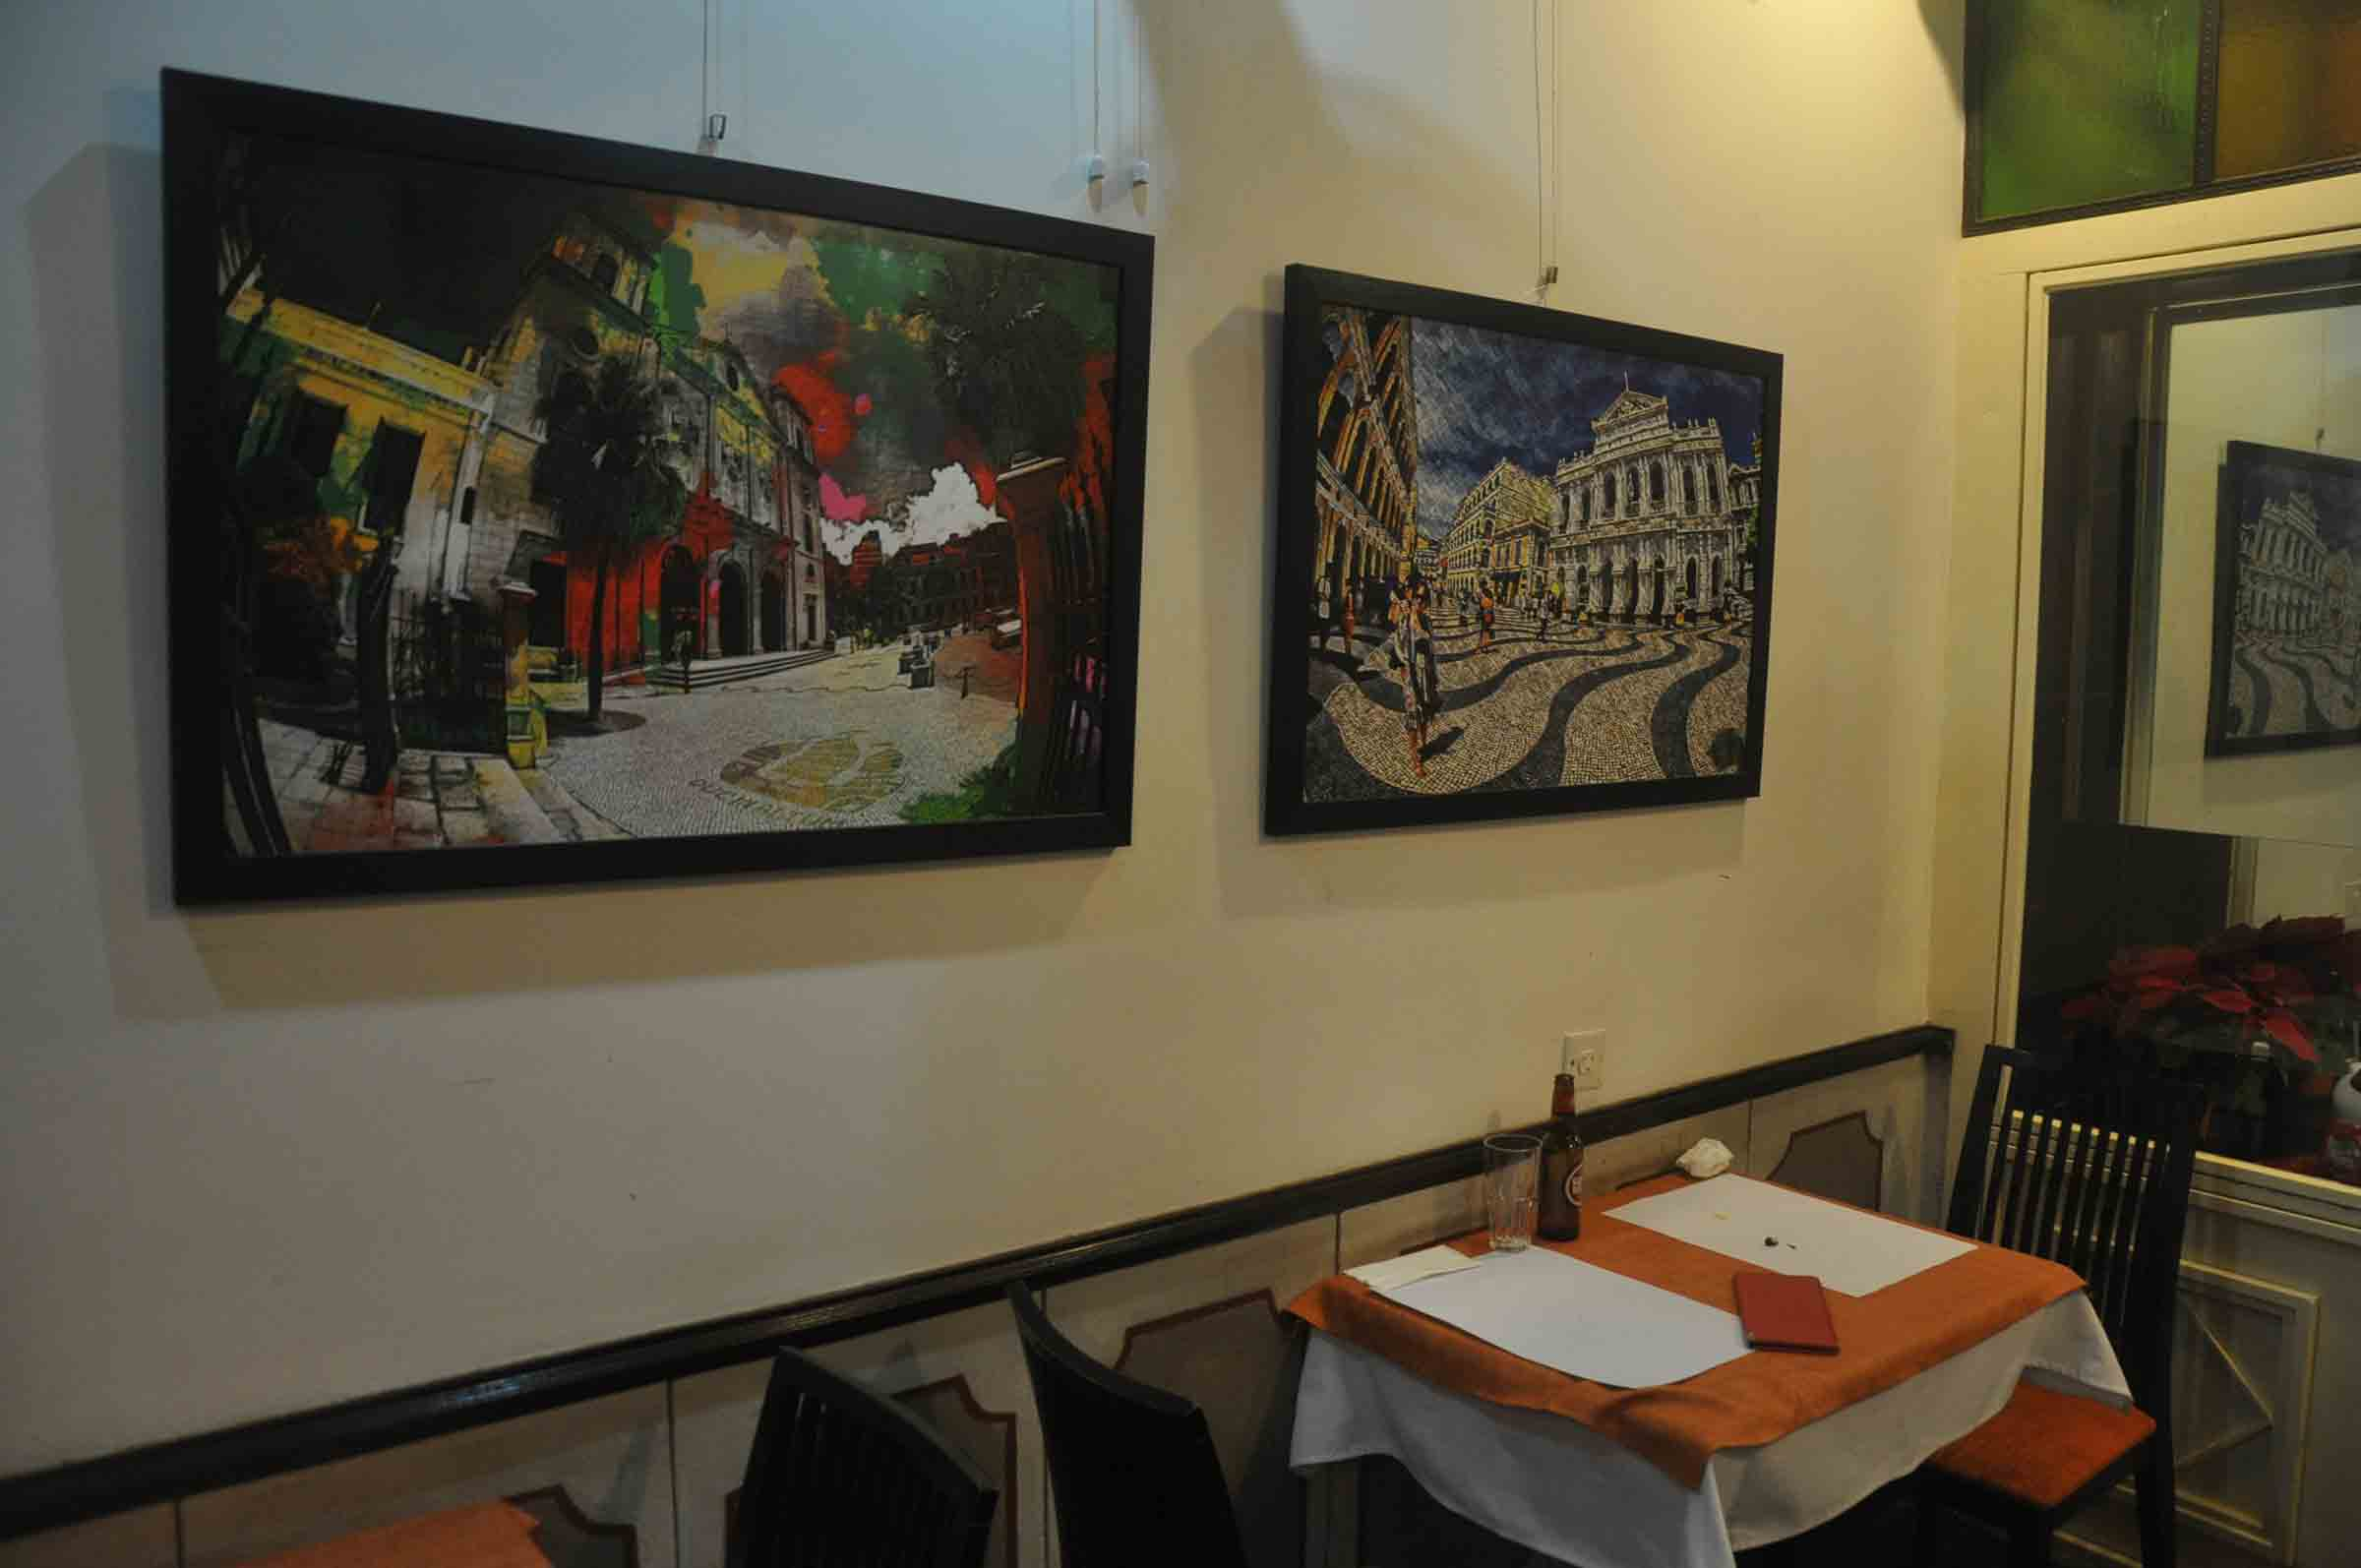 Ou Mun Cafe Macau tables and paintings